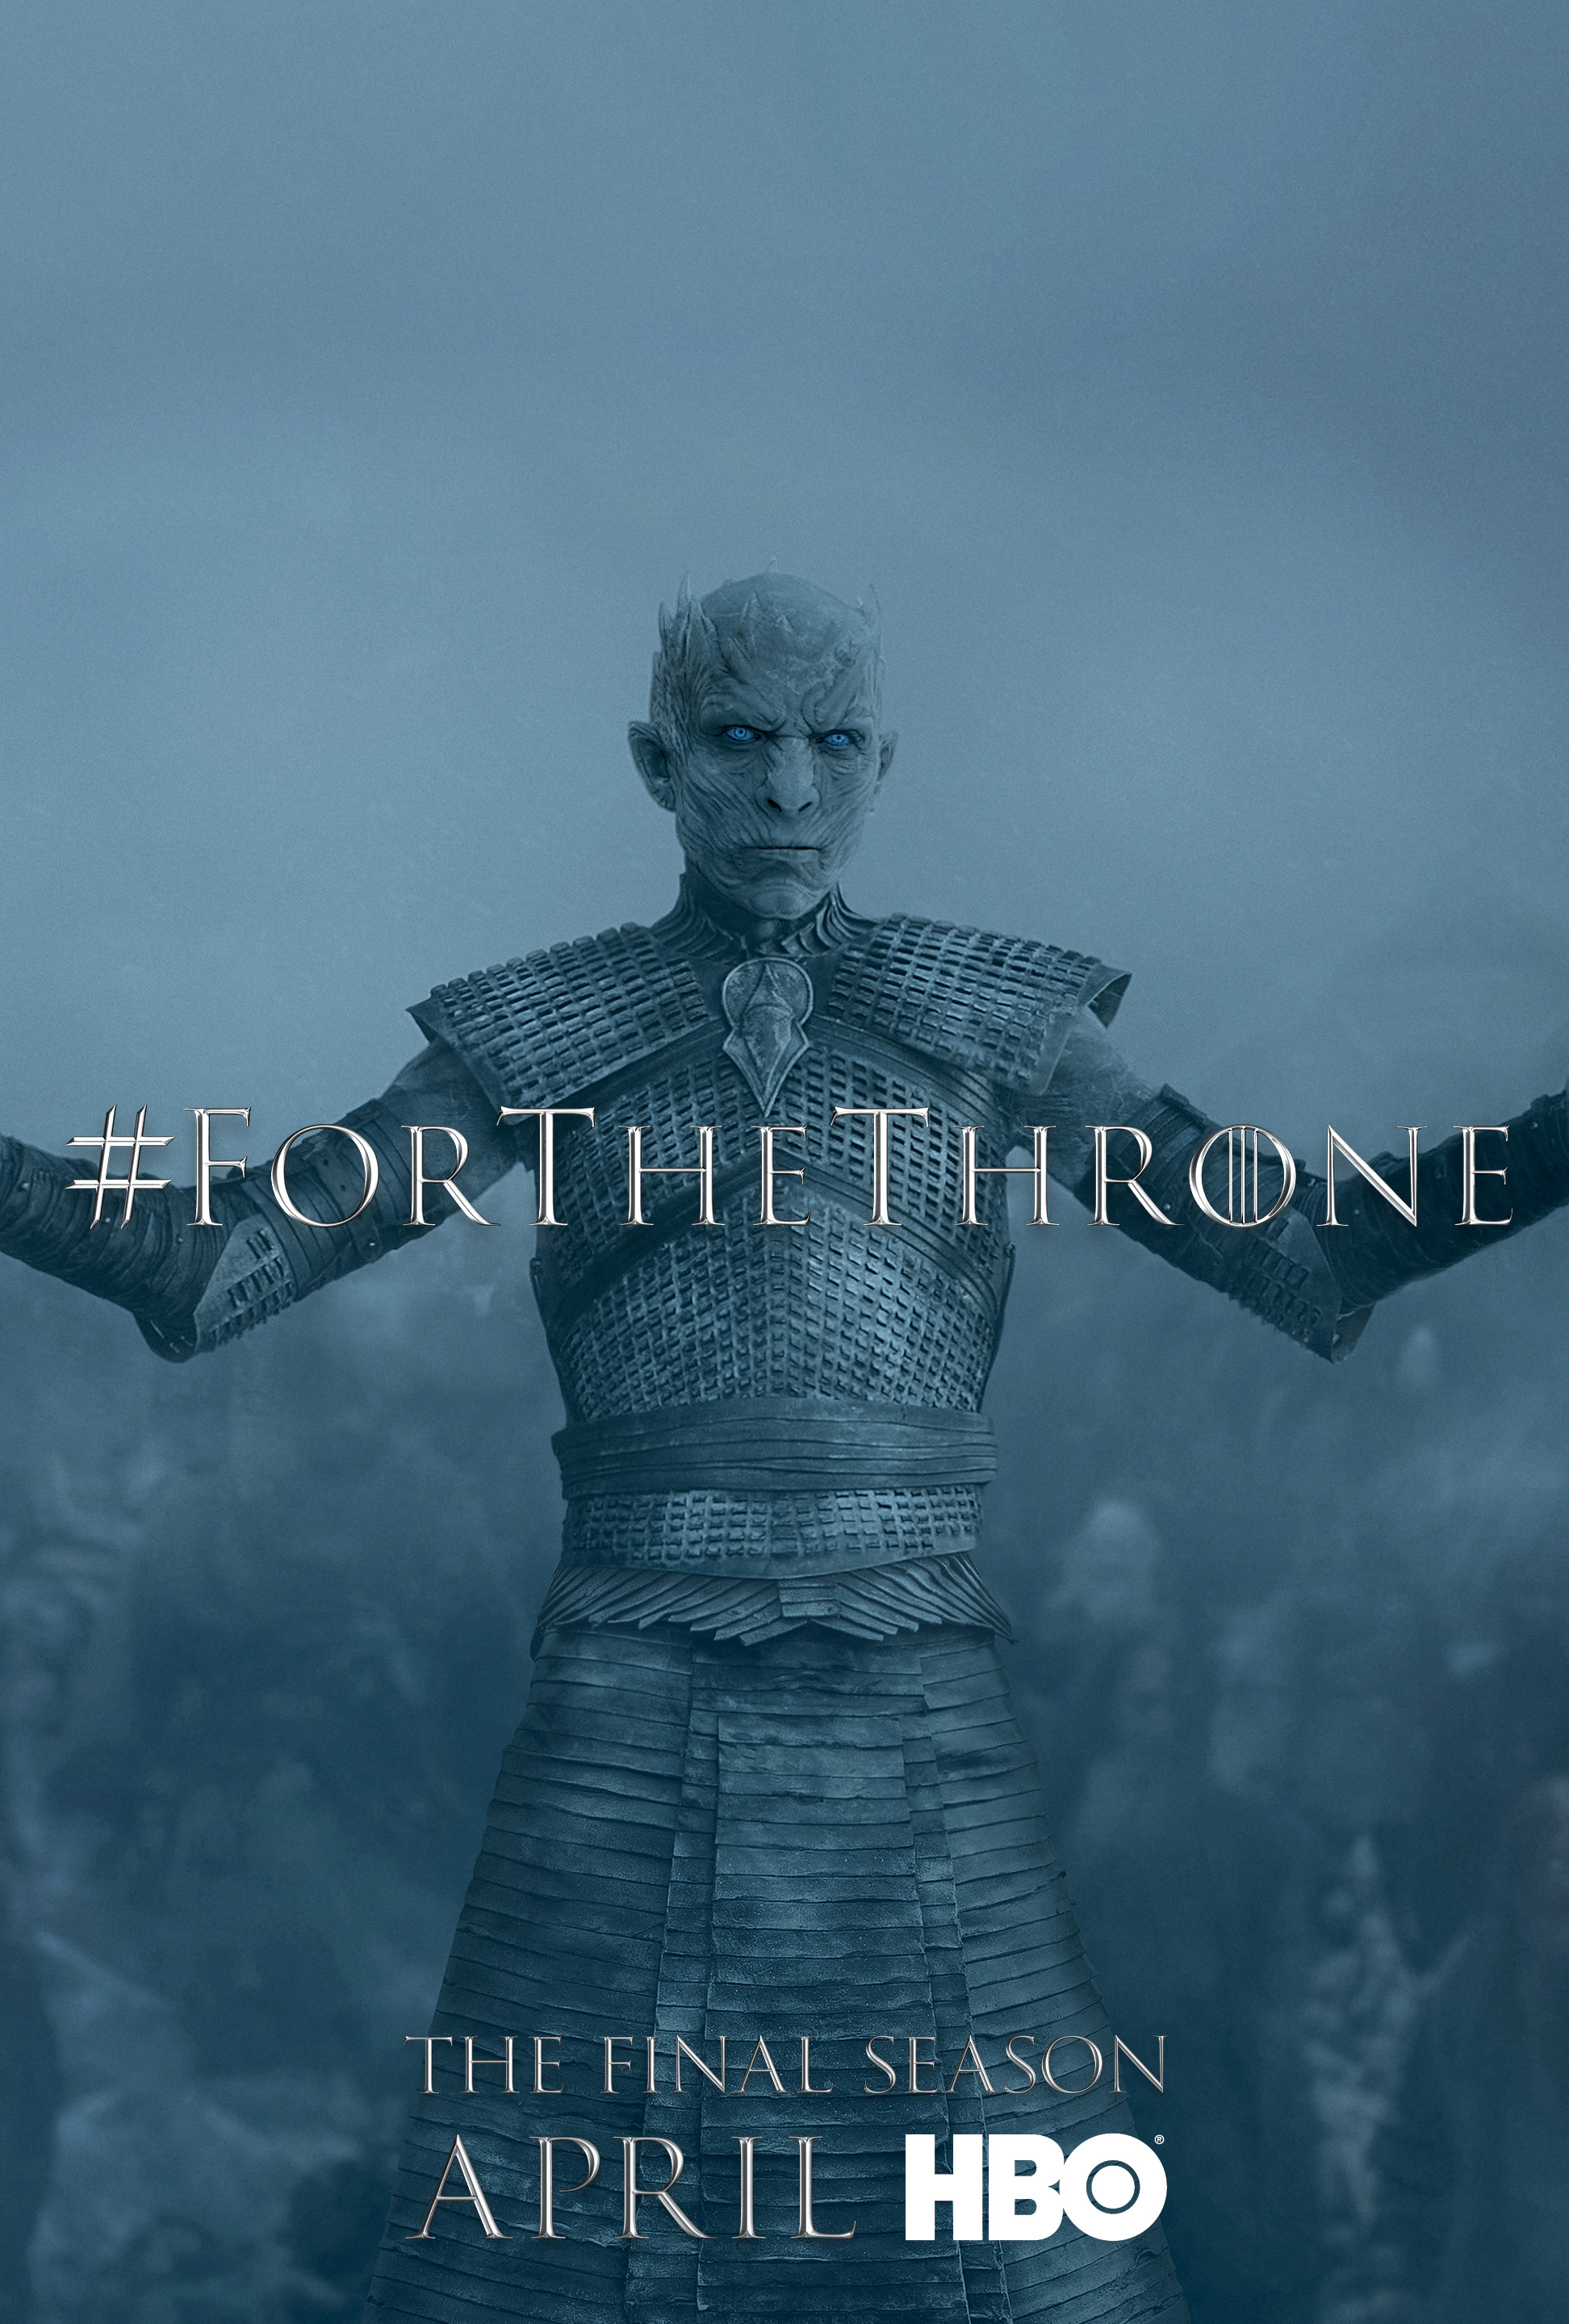 Game of Thrones - 'For the Throne' Poster - The Night King